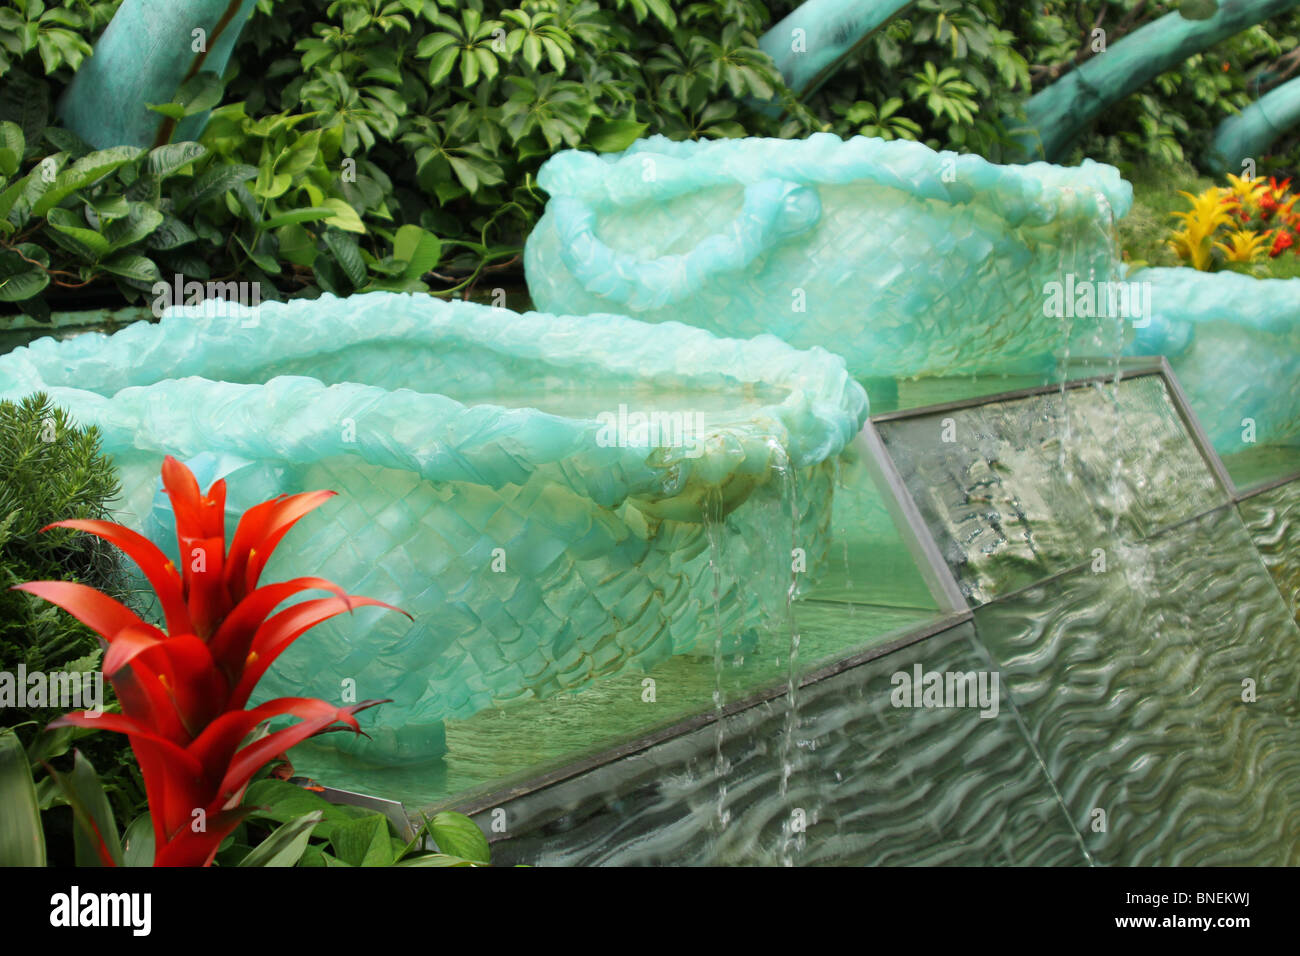 Water Fountain Basket carved from Jade Stone. - Stock Image